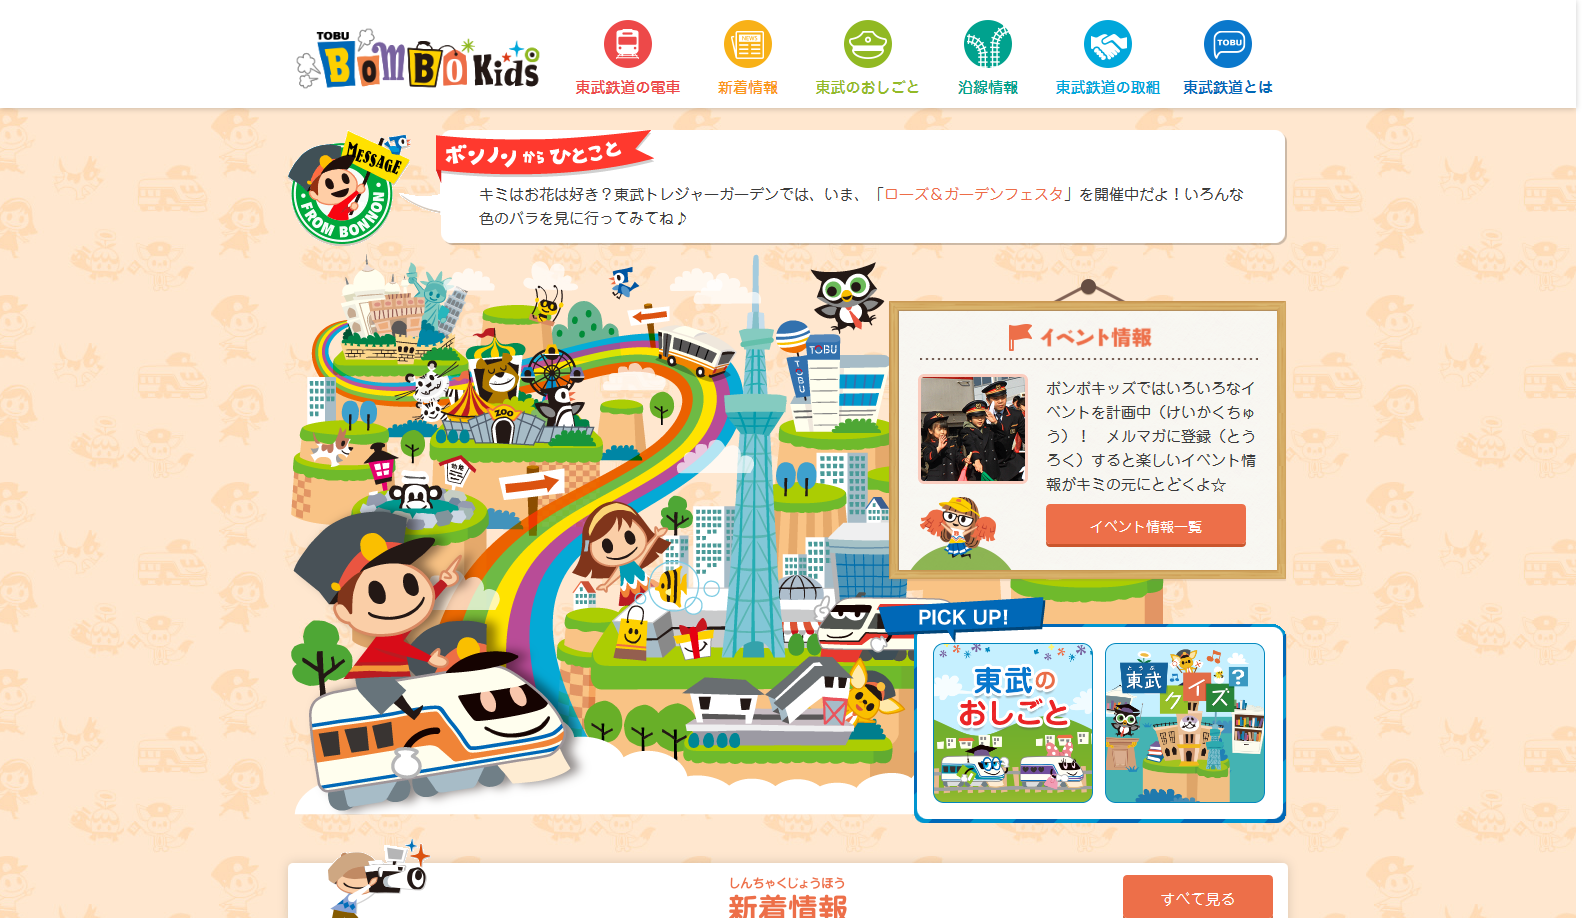 東武鉄道キッズサイト TOBU BomBo Kids(と~ぶ ボンボキッズ)